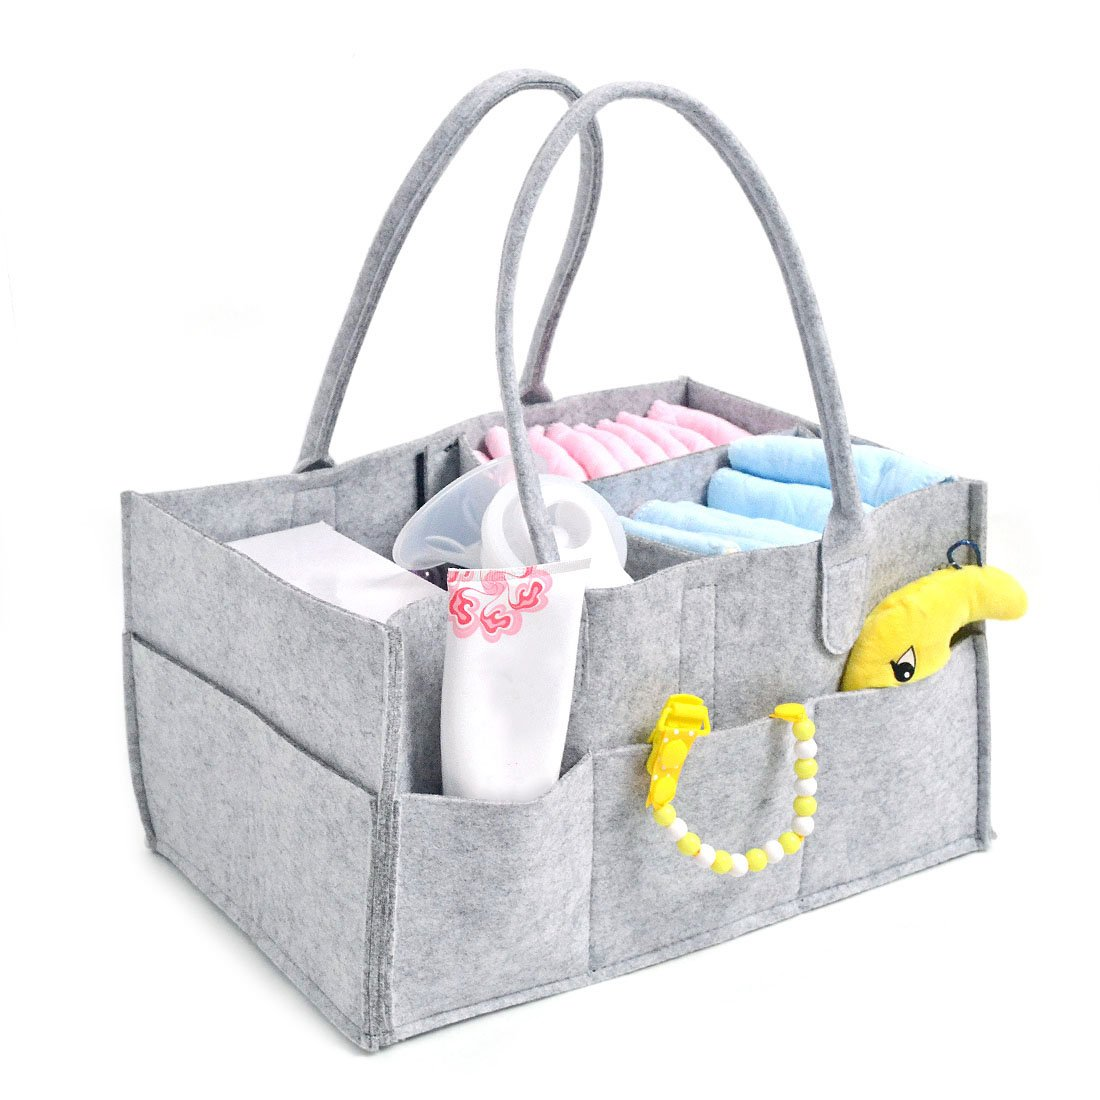 Saien Baby Diaper Caddy Organizer Portable Nursery Storage Tote for Diapers Wipes Gray (Gray)